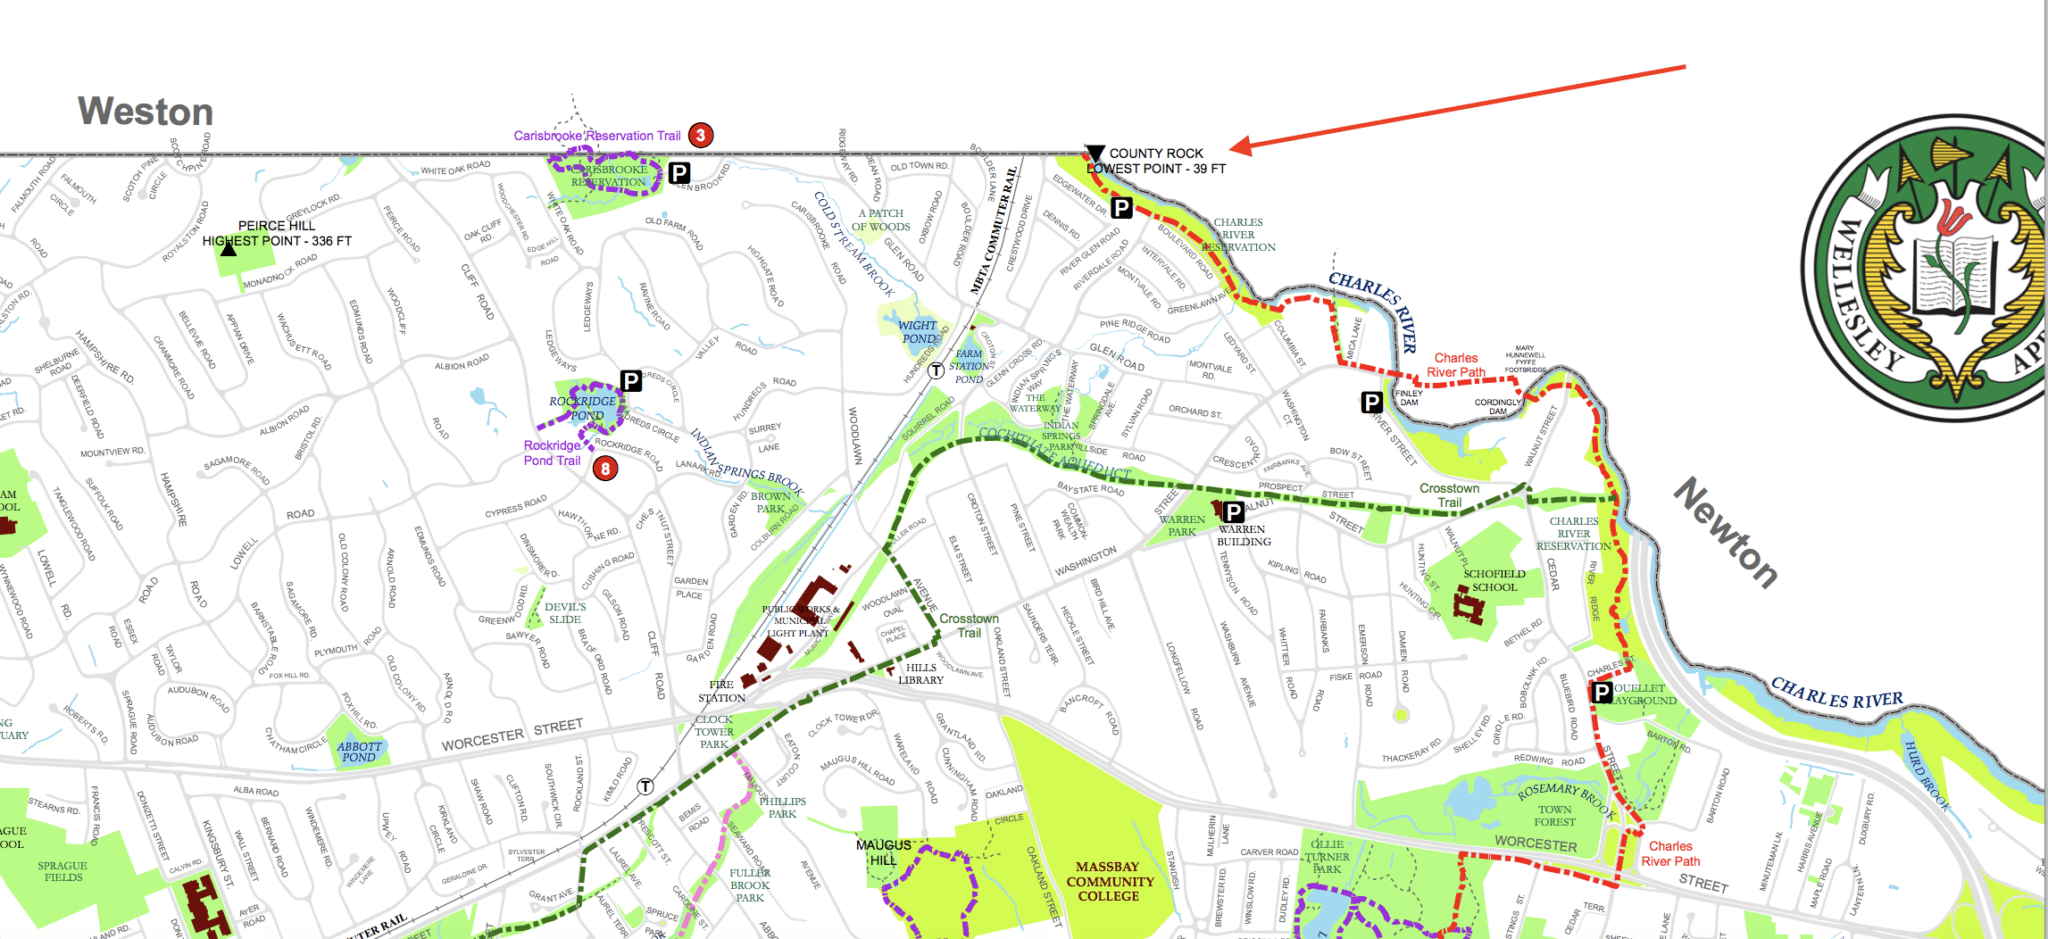 Wellesley Trails map